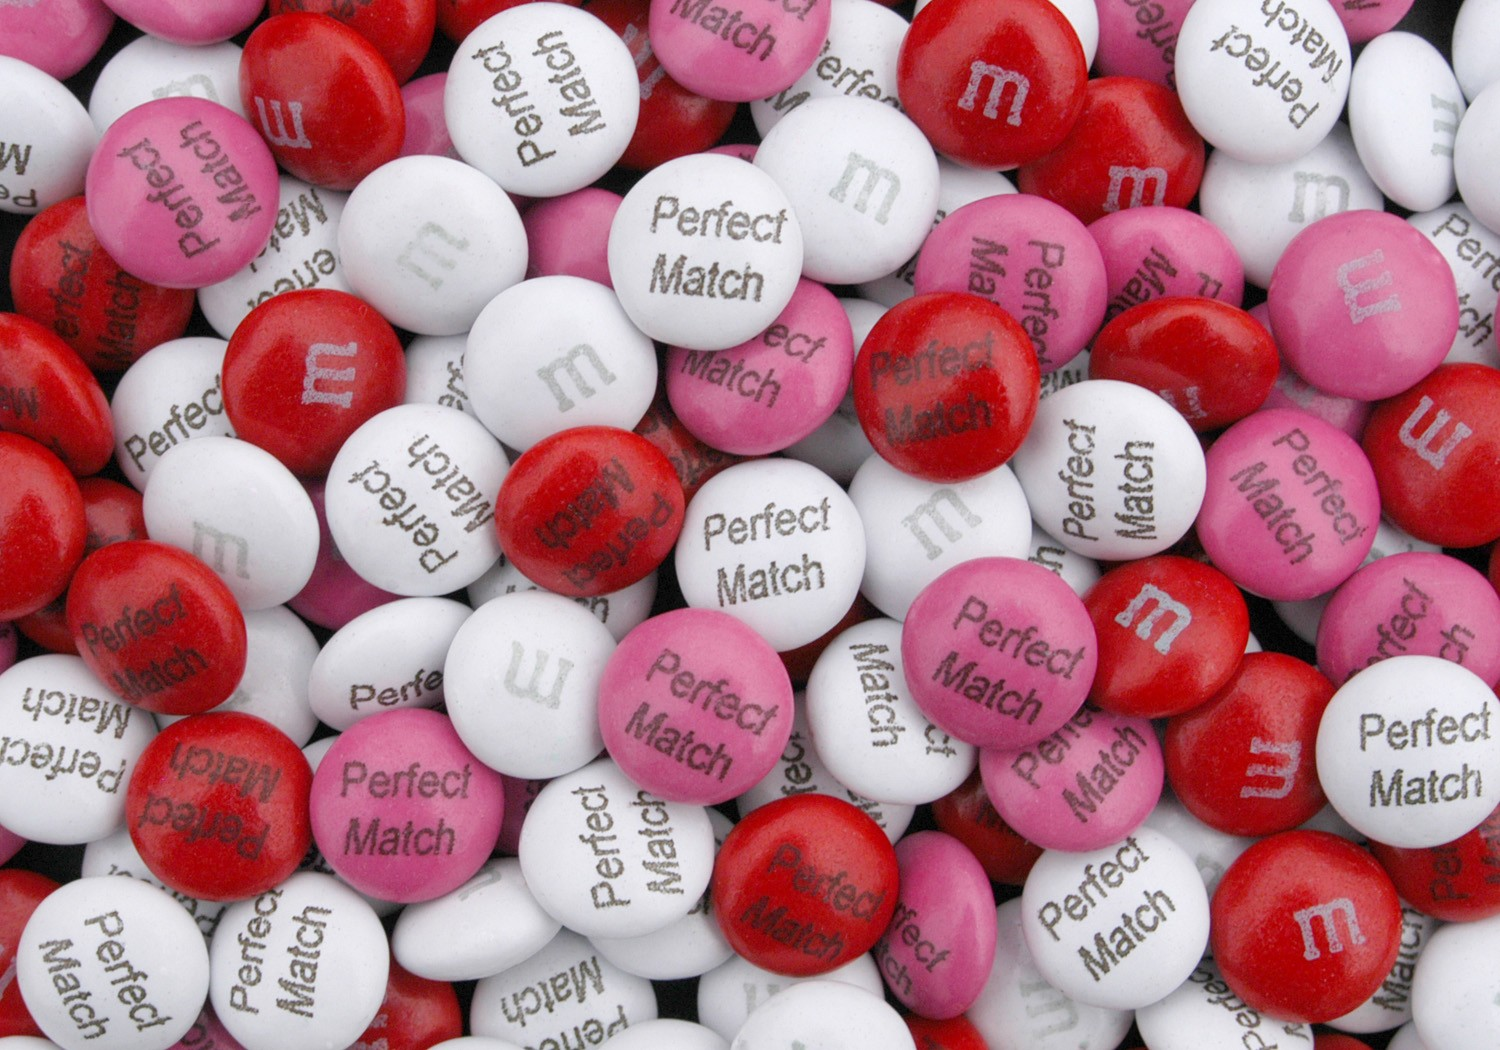 Personalized M&M'S Candies. 30% Off All Bulk Candy! Use Code JINGLEBULK DETAILS × Offer details. JINGLEBULK *30% Off All Bulk Candy. No minimum purchase required. Excludes NFL.